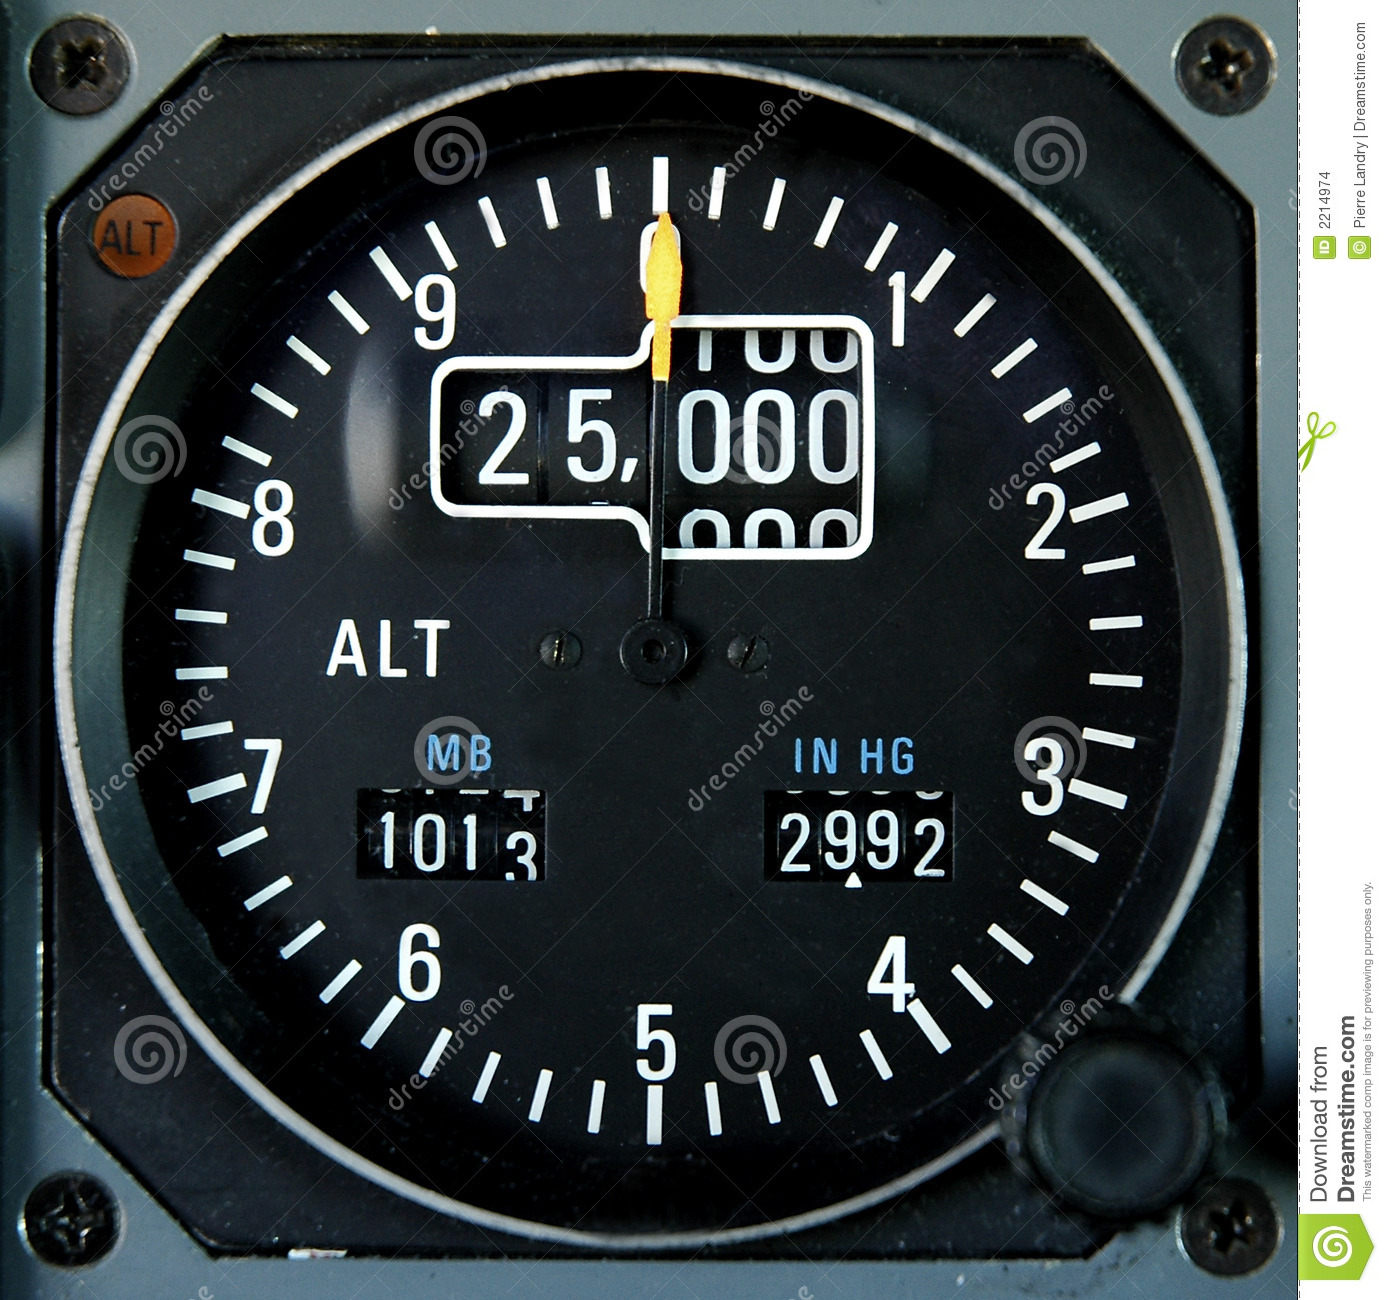 Analog Aircraft Altimeter Indicating A Cruise Altitude Of 25000 Feet